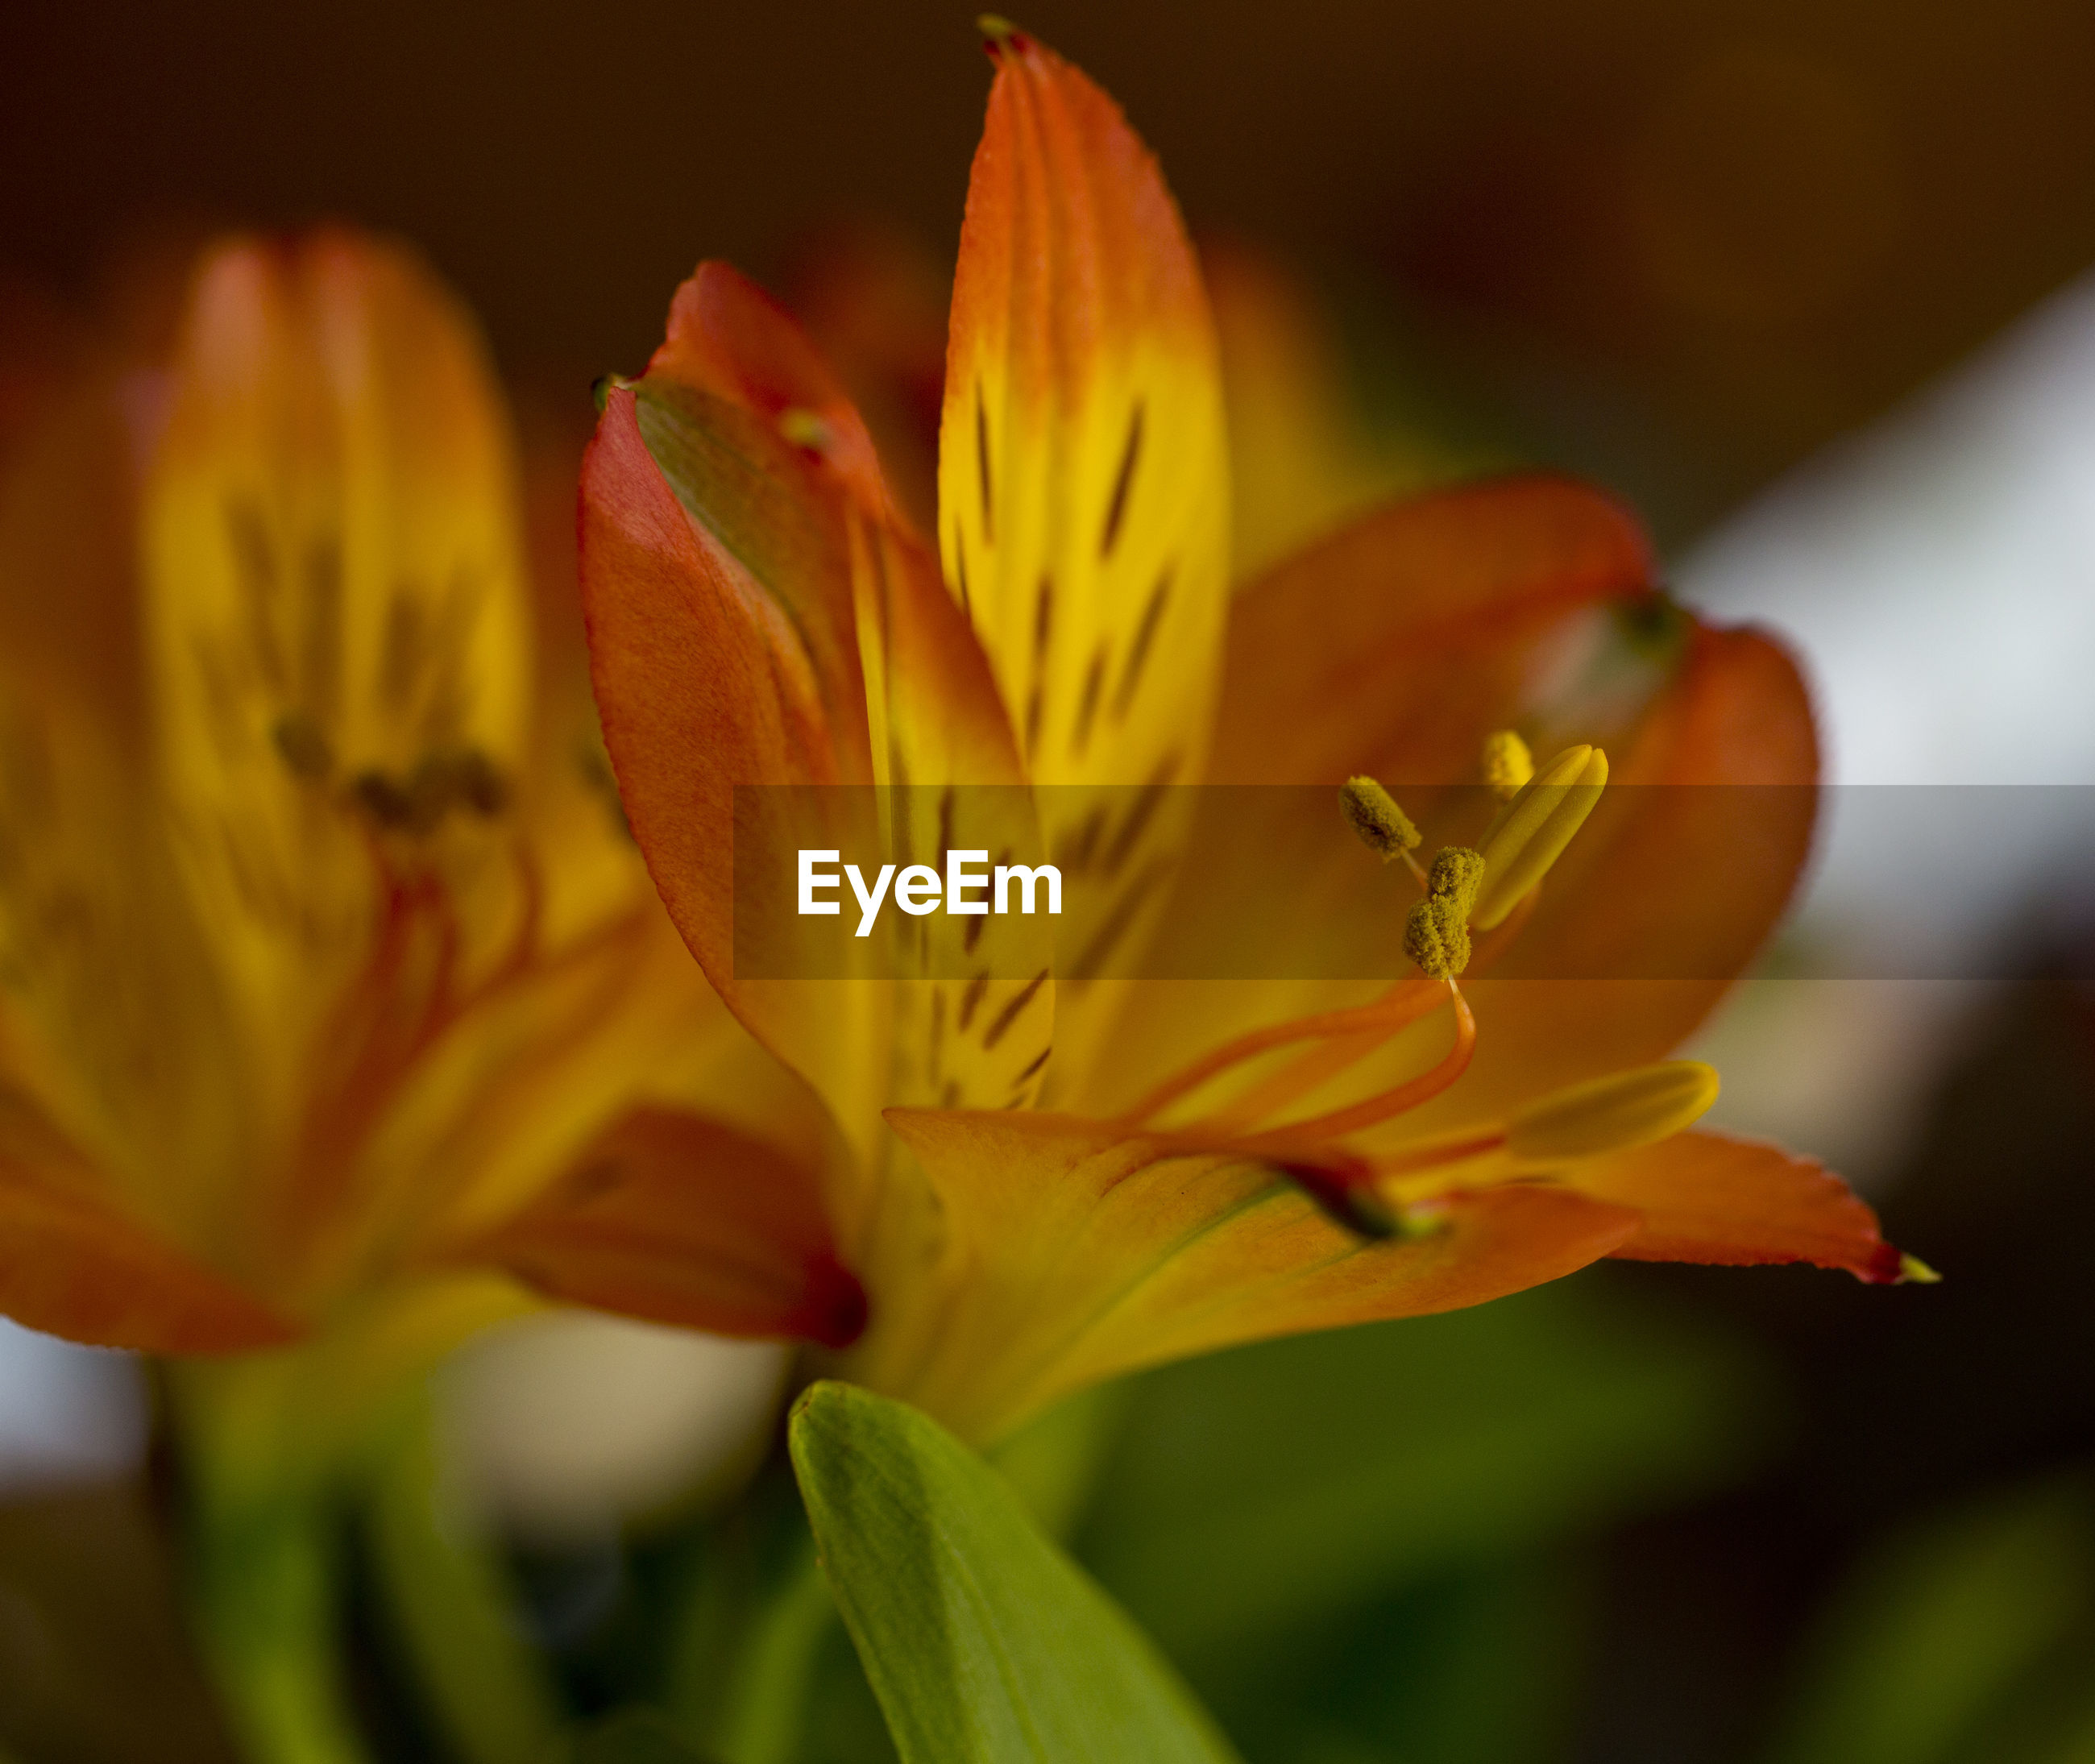 CLOSE-UP OF DAY LILY BLOOMING